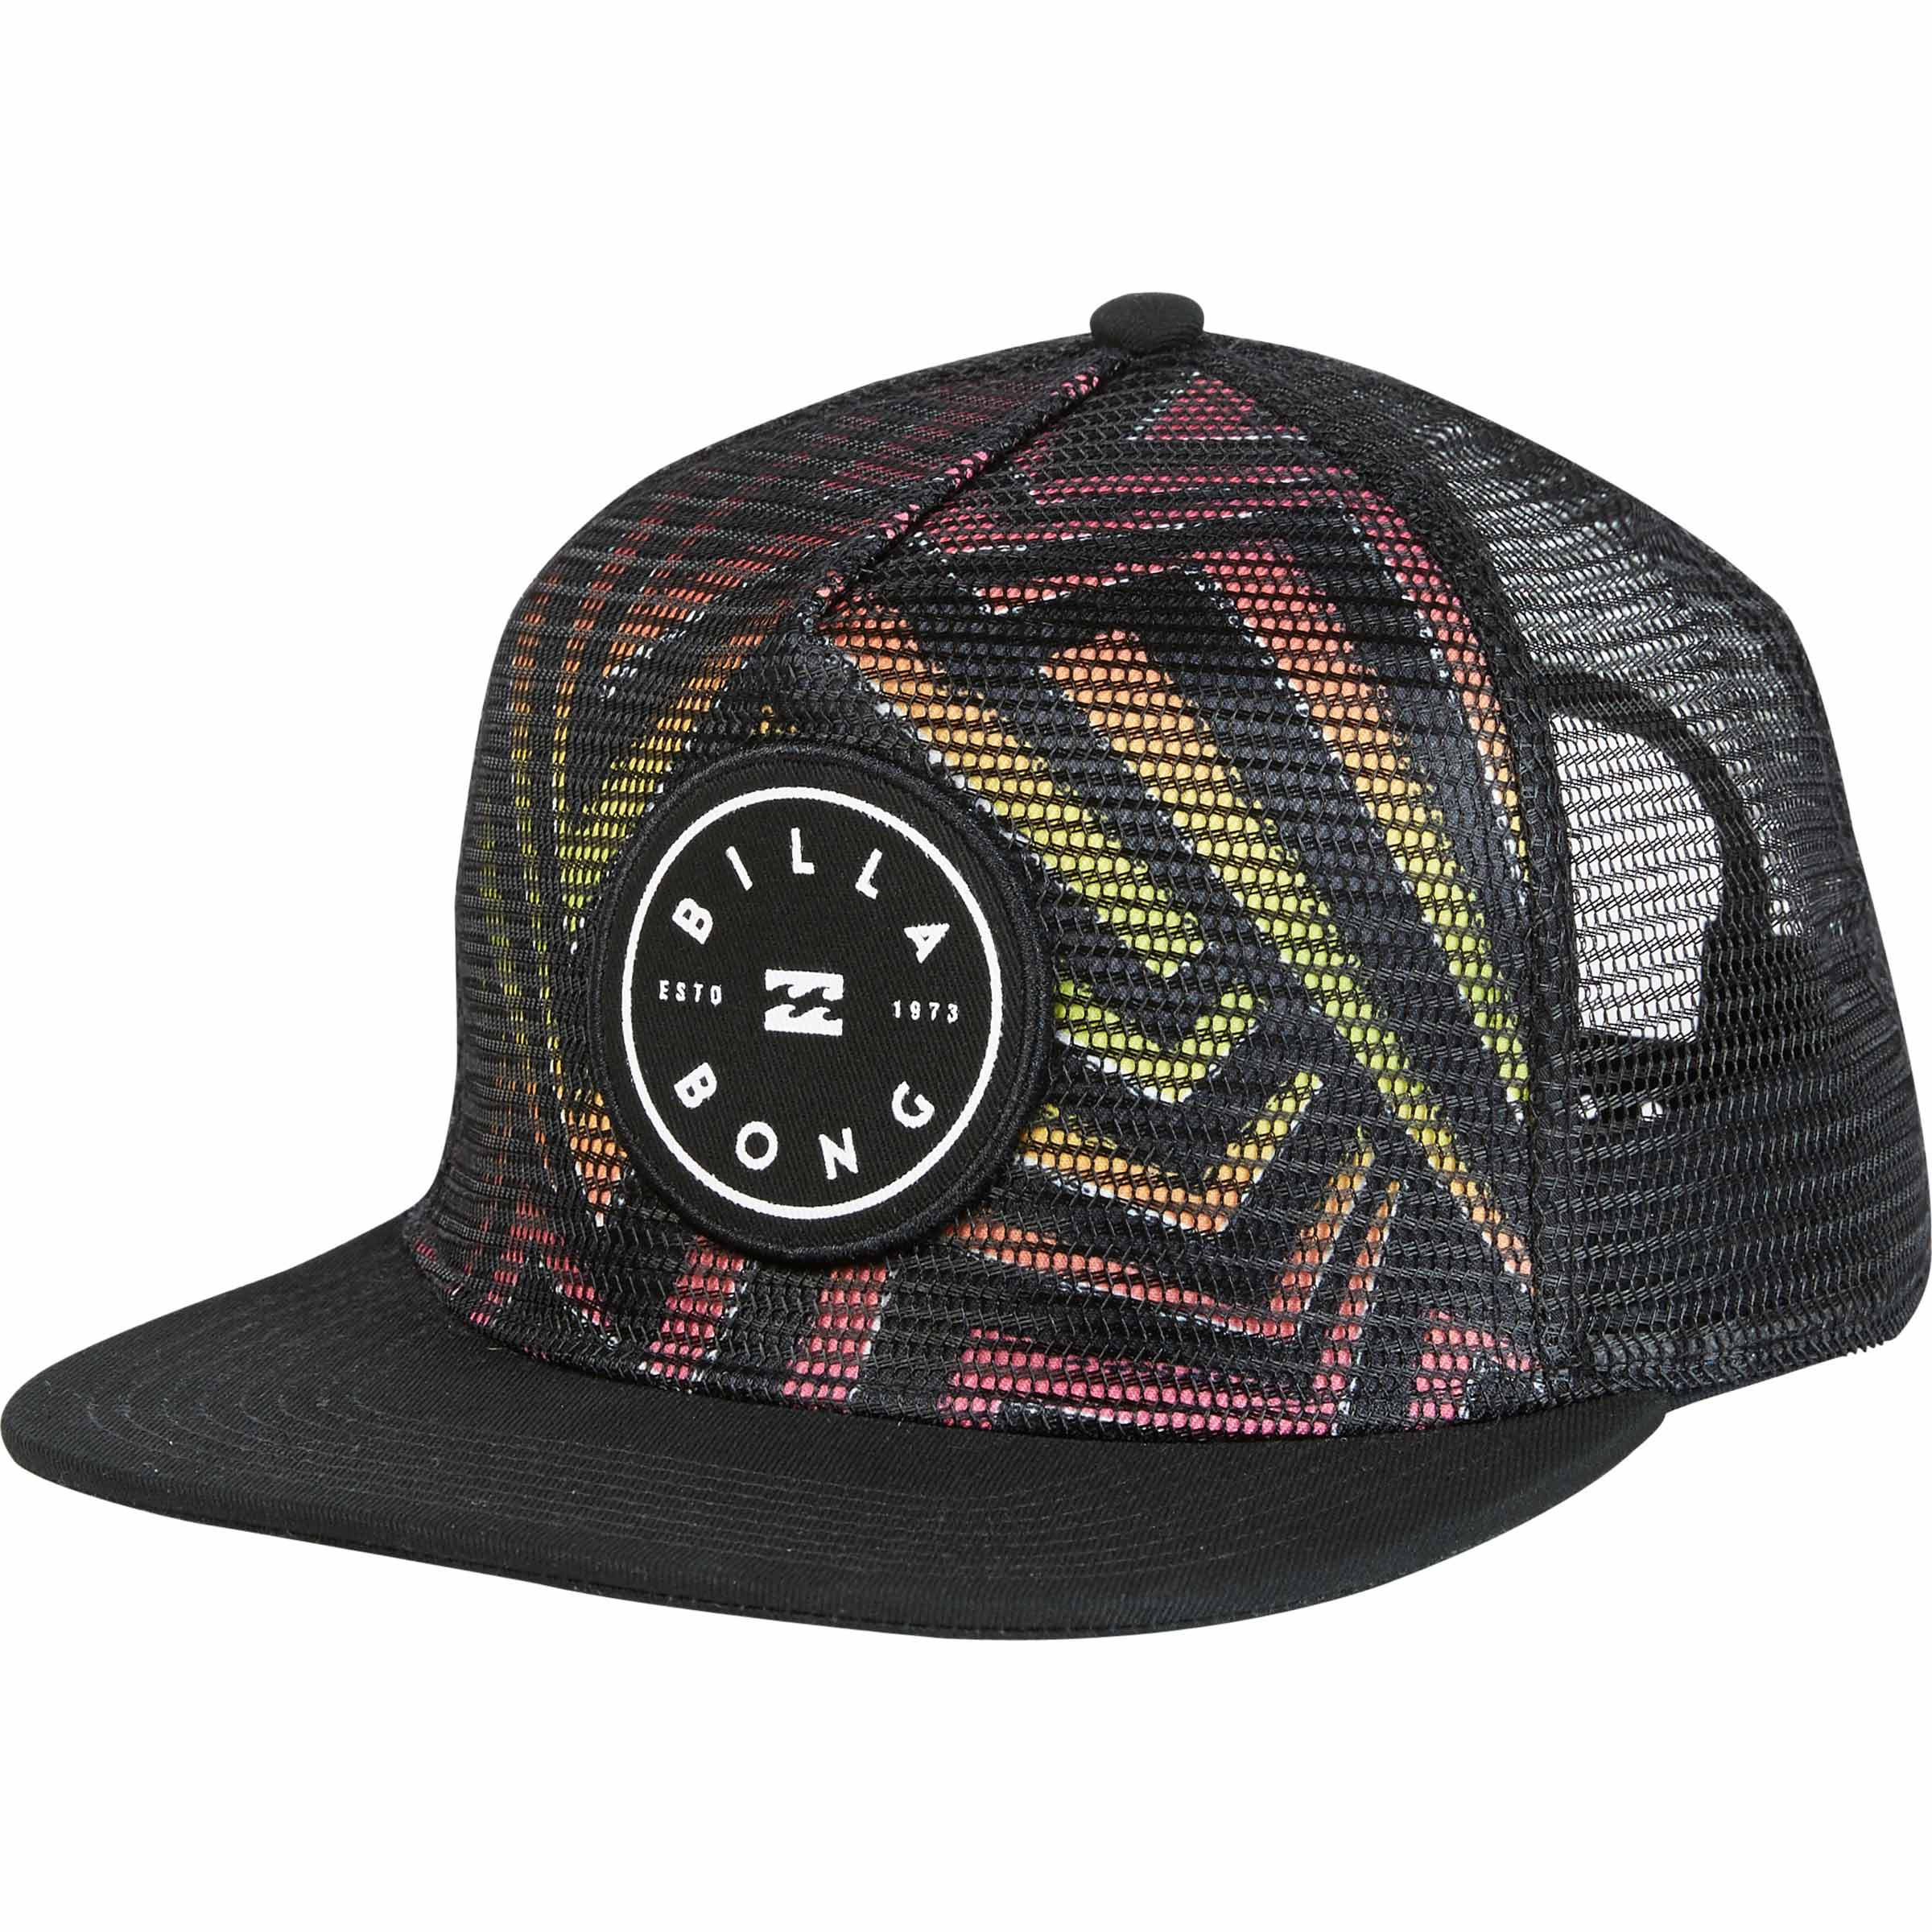 new concept 7a17b f3adc ... canada lyst billabong rotor trucker hat in black for men 006e7 78aff